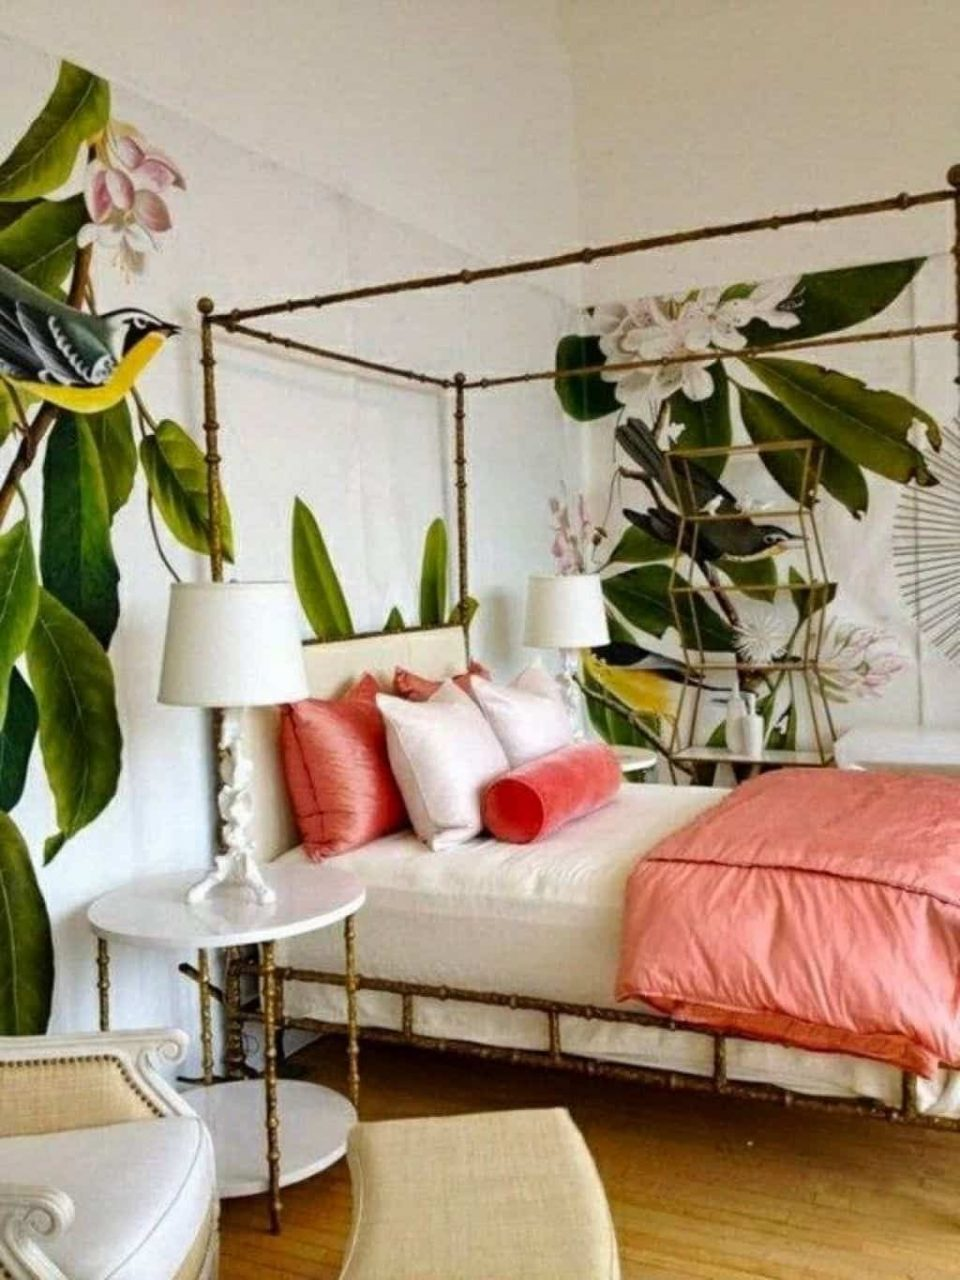 Making A Paradise With Tropical Bedroom Theme In 2019 Apt Ca